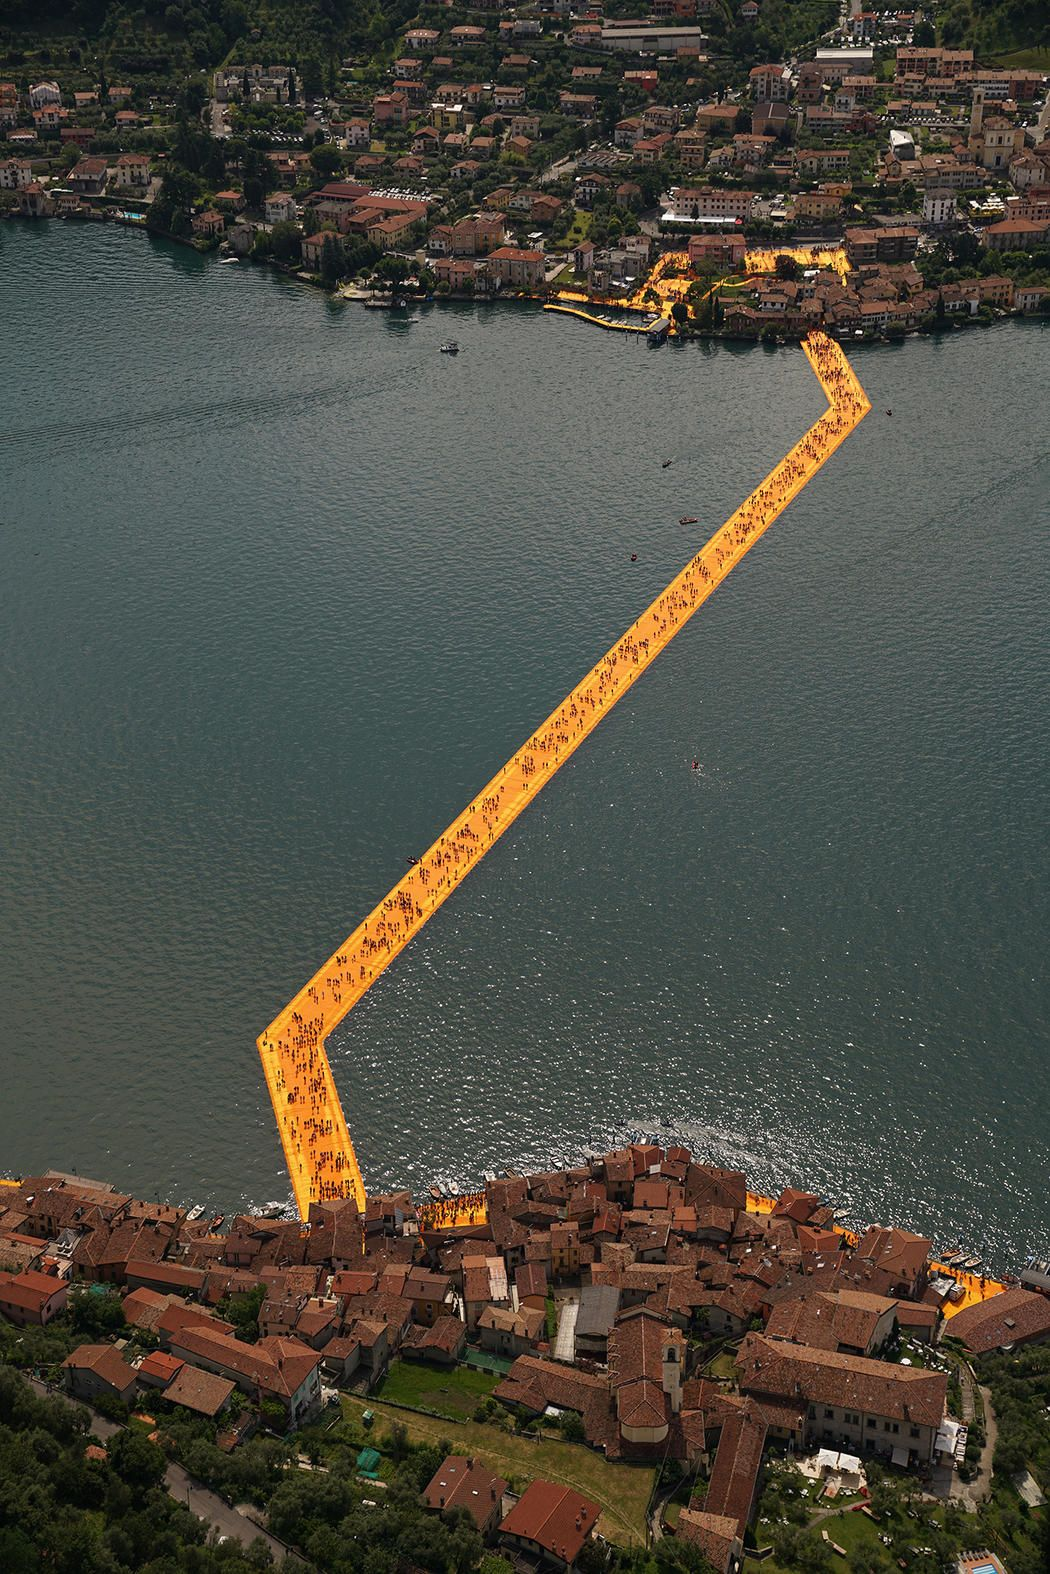 """The Floating Piers"" is a temporary, public art installation by artists Christo and Jeanne-Claude that is currently on display on top of Lake Iseo in Lombardy, Italy. Its vibrant, yellow walkways are constructed with 70,000 square meters of fabric, carried by a modular floating dock system of 200,000 high-density polyethylene cubes. Floating Piers will remain open to public until July 3rd this summer.  Photo by @wolfgangvolz"